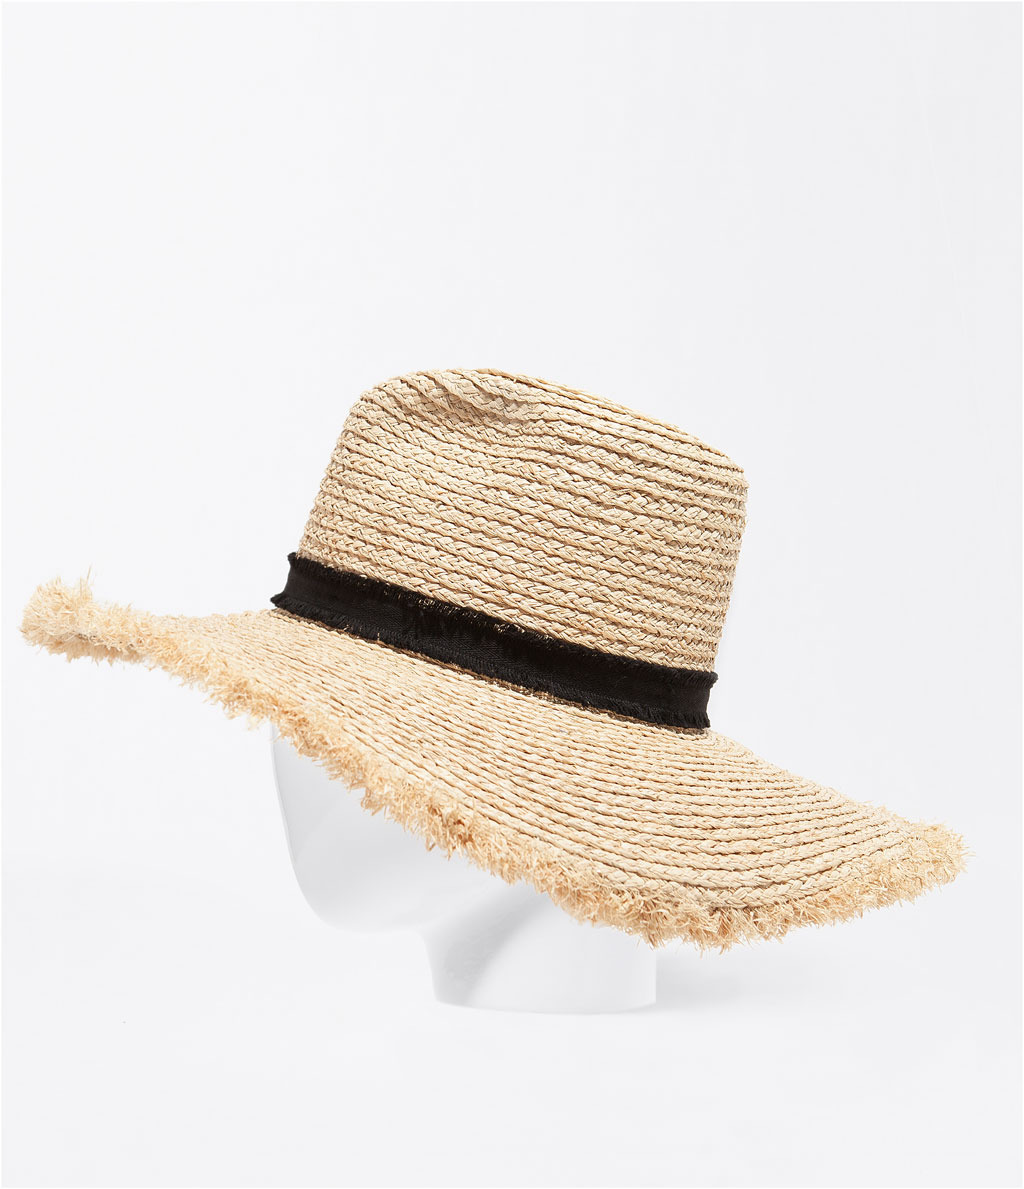 Wide Brim Hat With Ribbon - predominant colour: stone; occasions: casual, holiday; type of pattern: standard; style: wide brimmed; size: large; material: macrame/raffia/straw; pattern: plain; season: s/s 2014